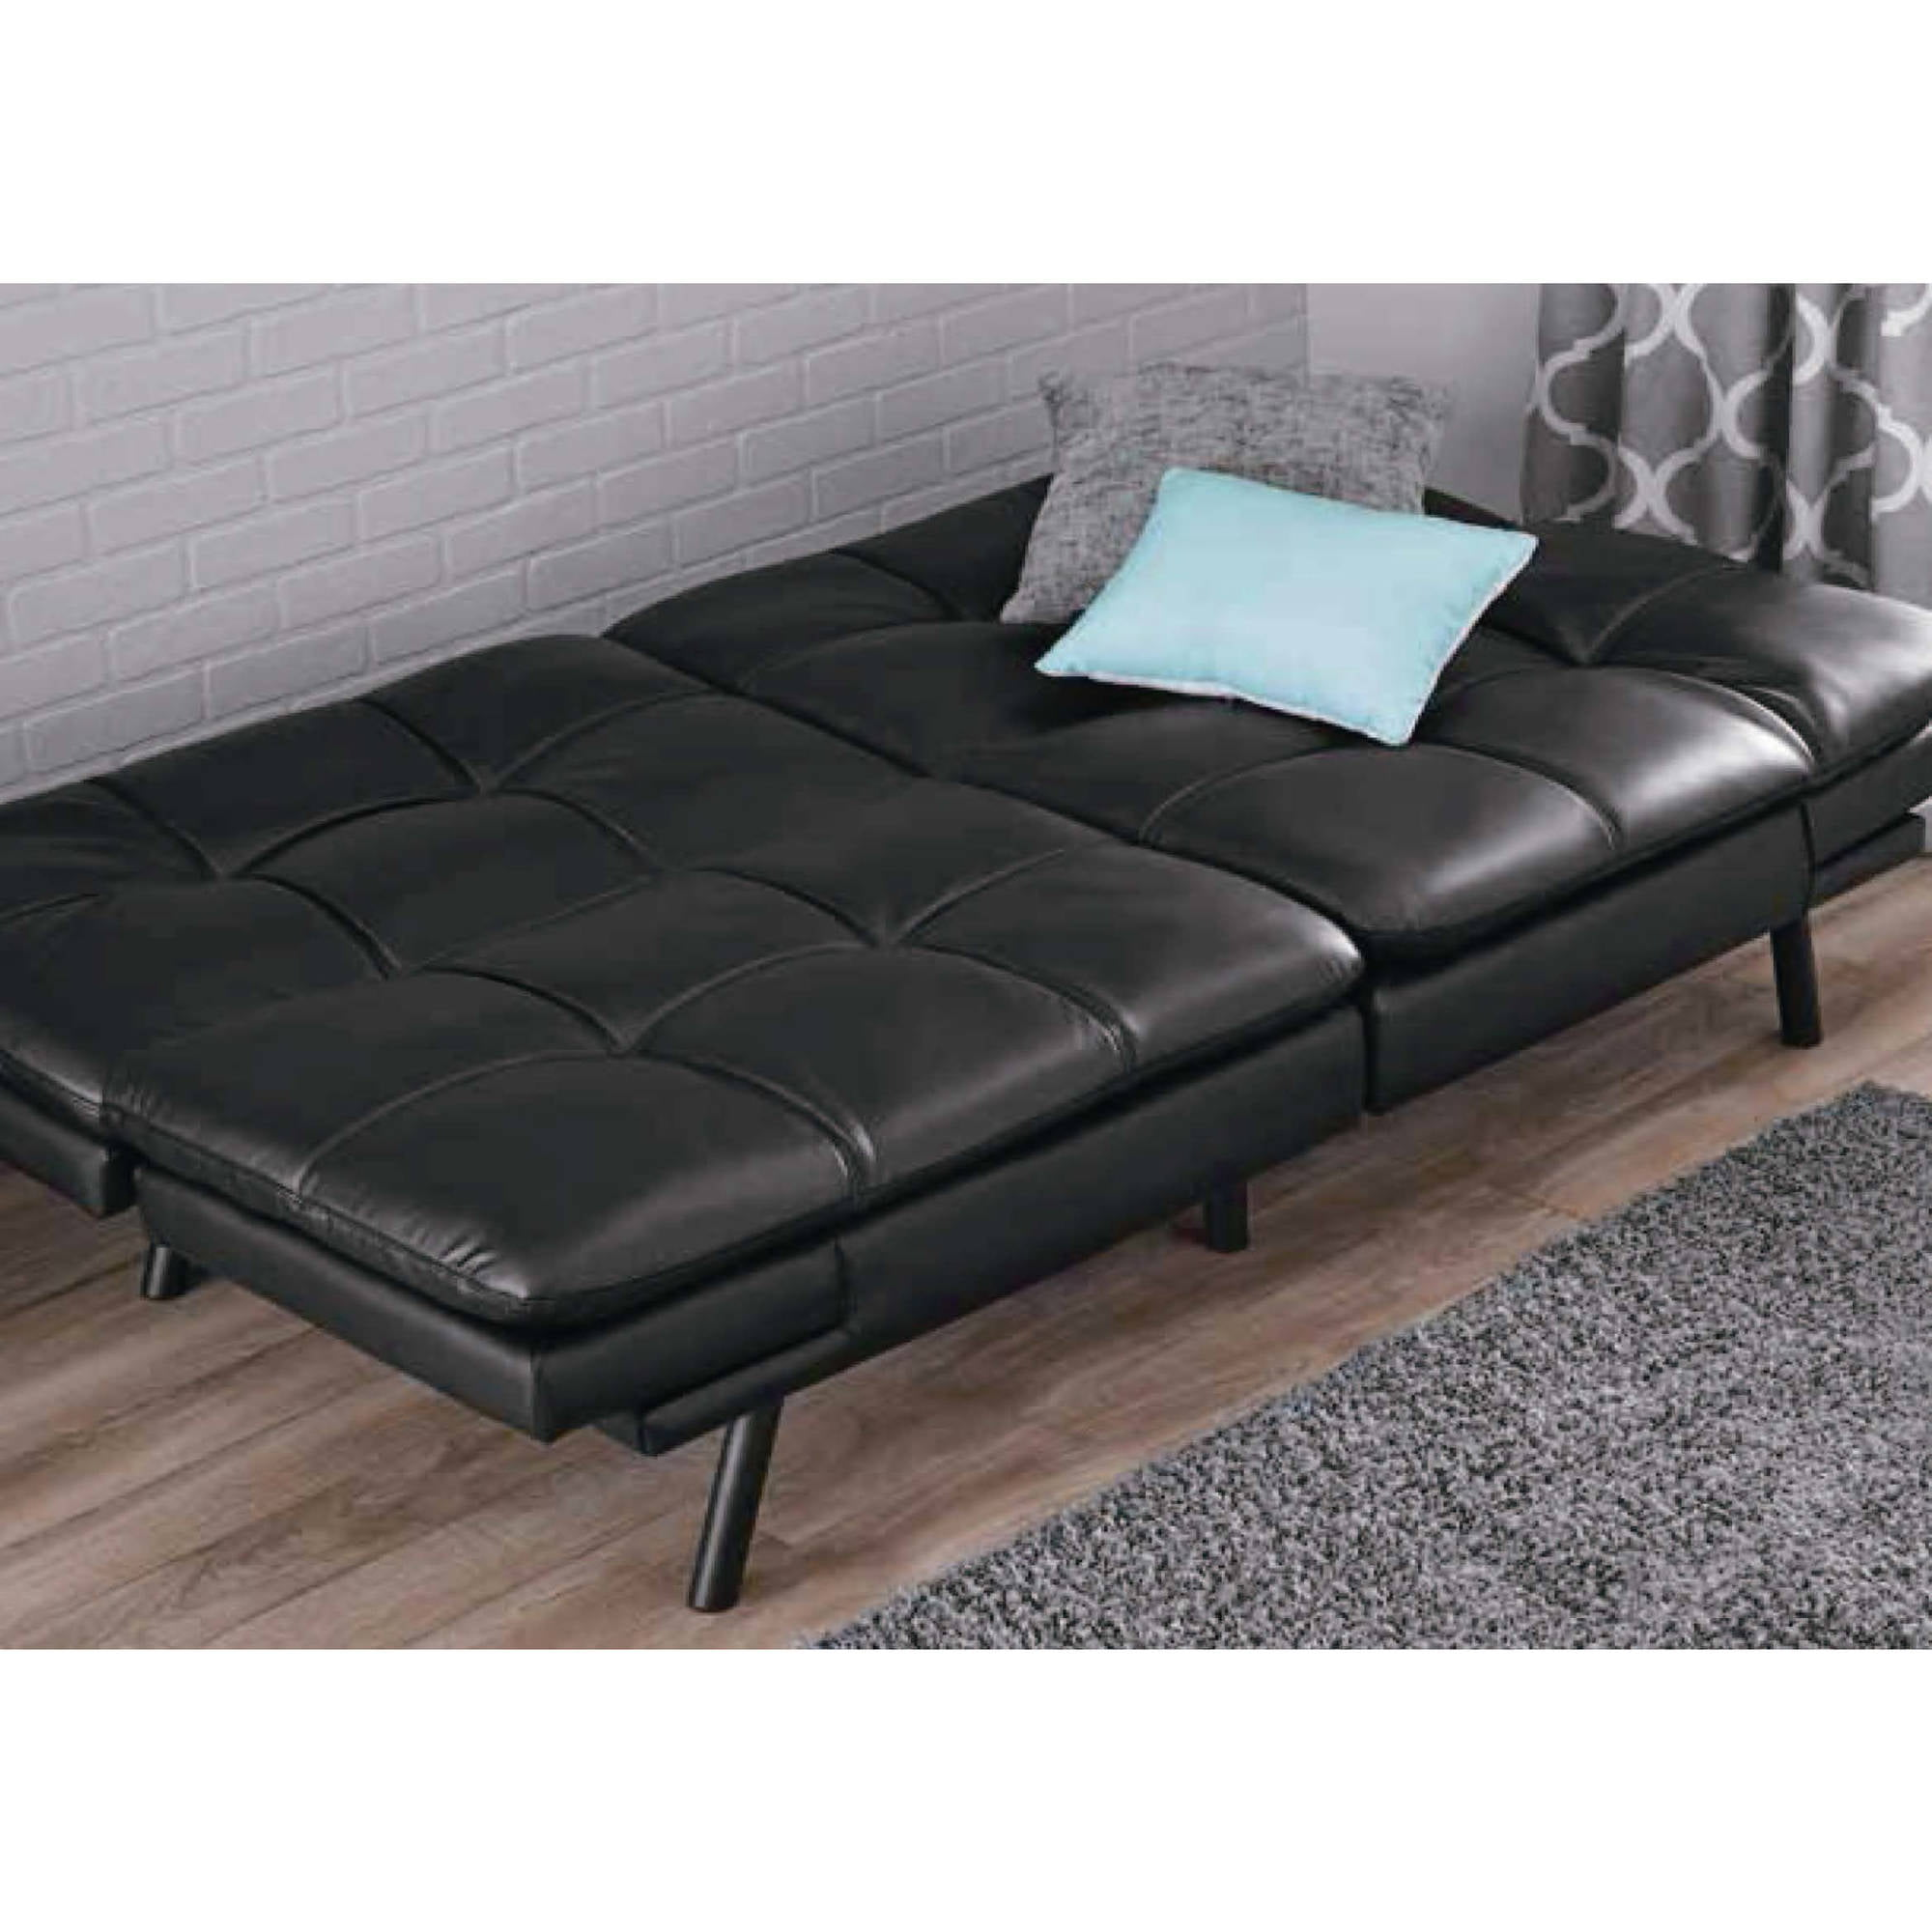 Leather Futon Couch Sleeper Sofa Love seat Convertible Sectional Bed